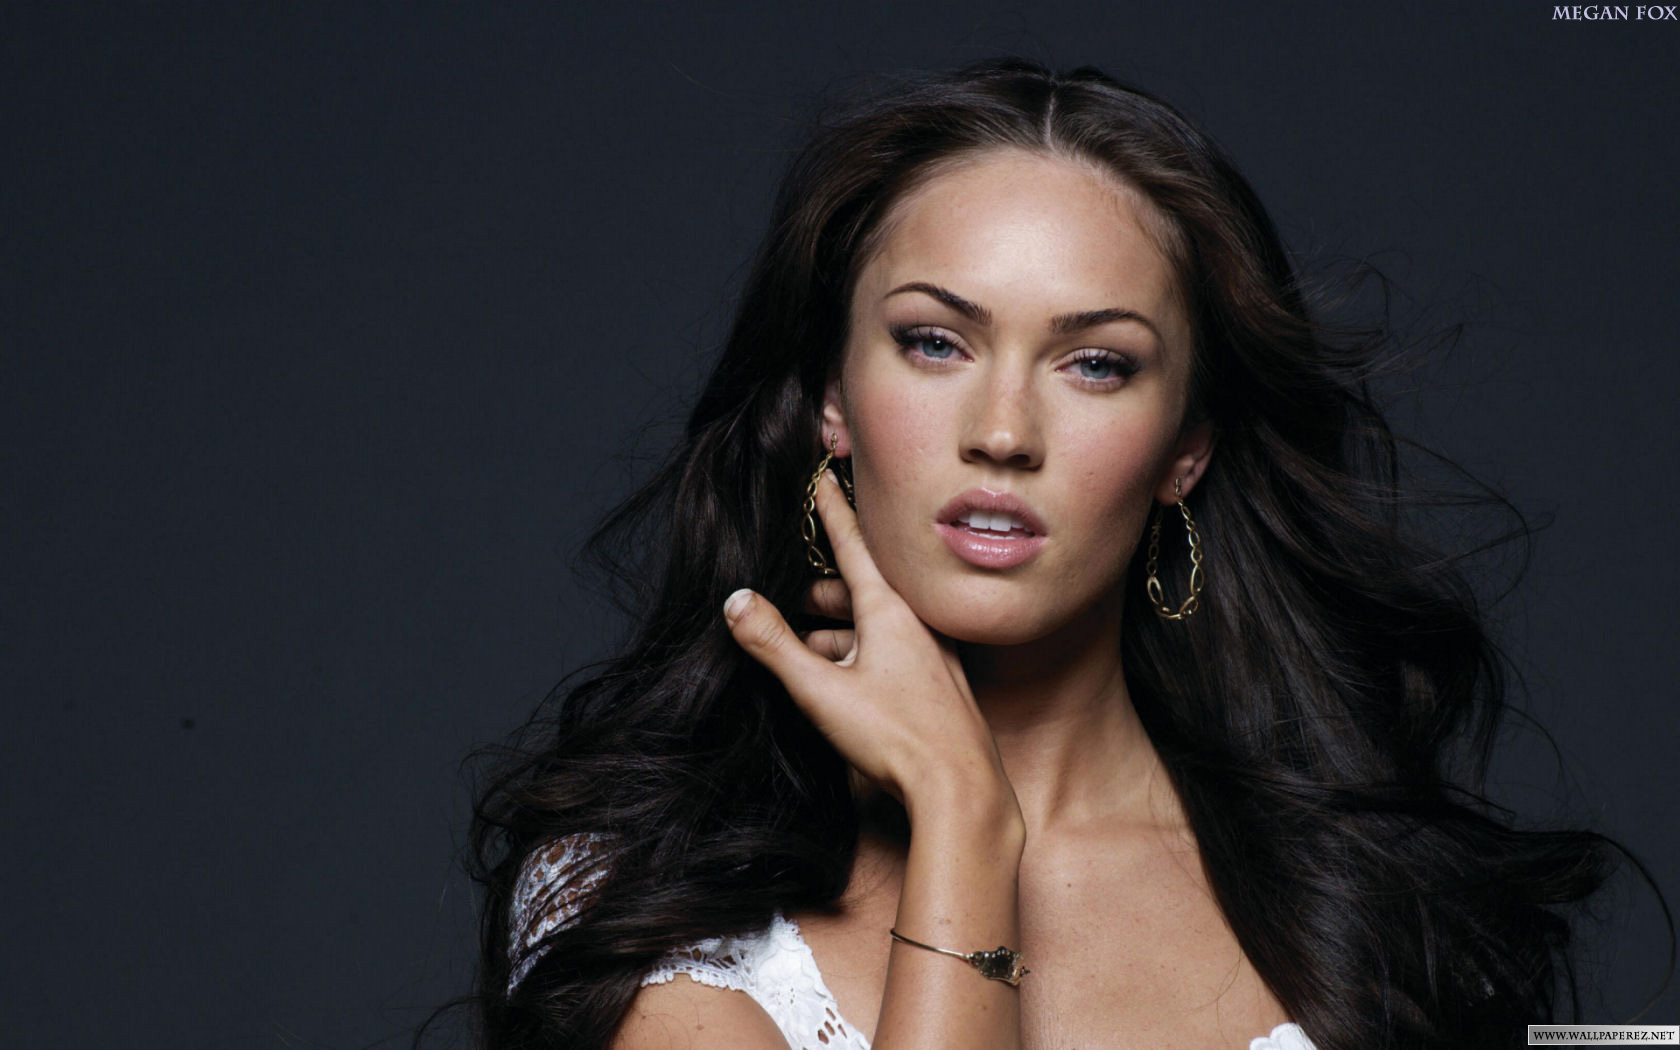 Megan Fox Beauty Desktop Wallpaper